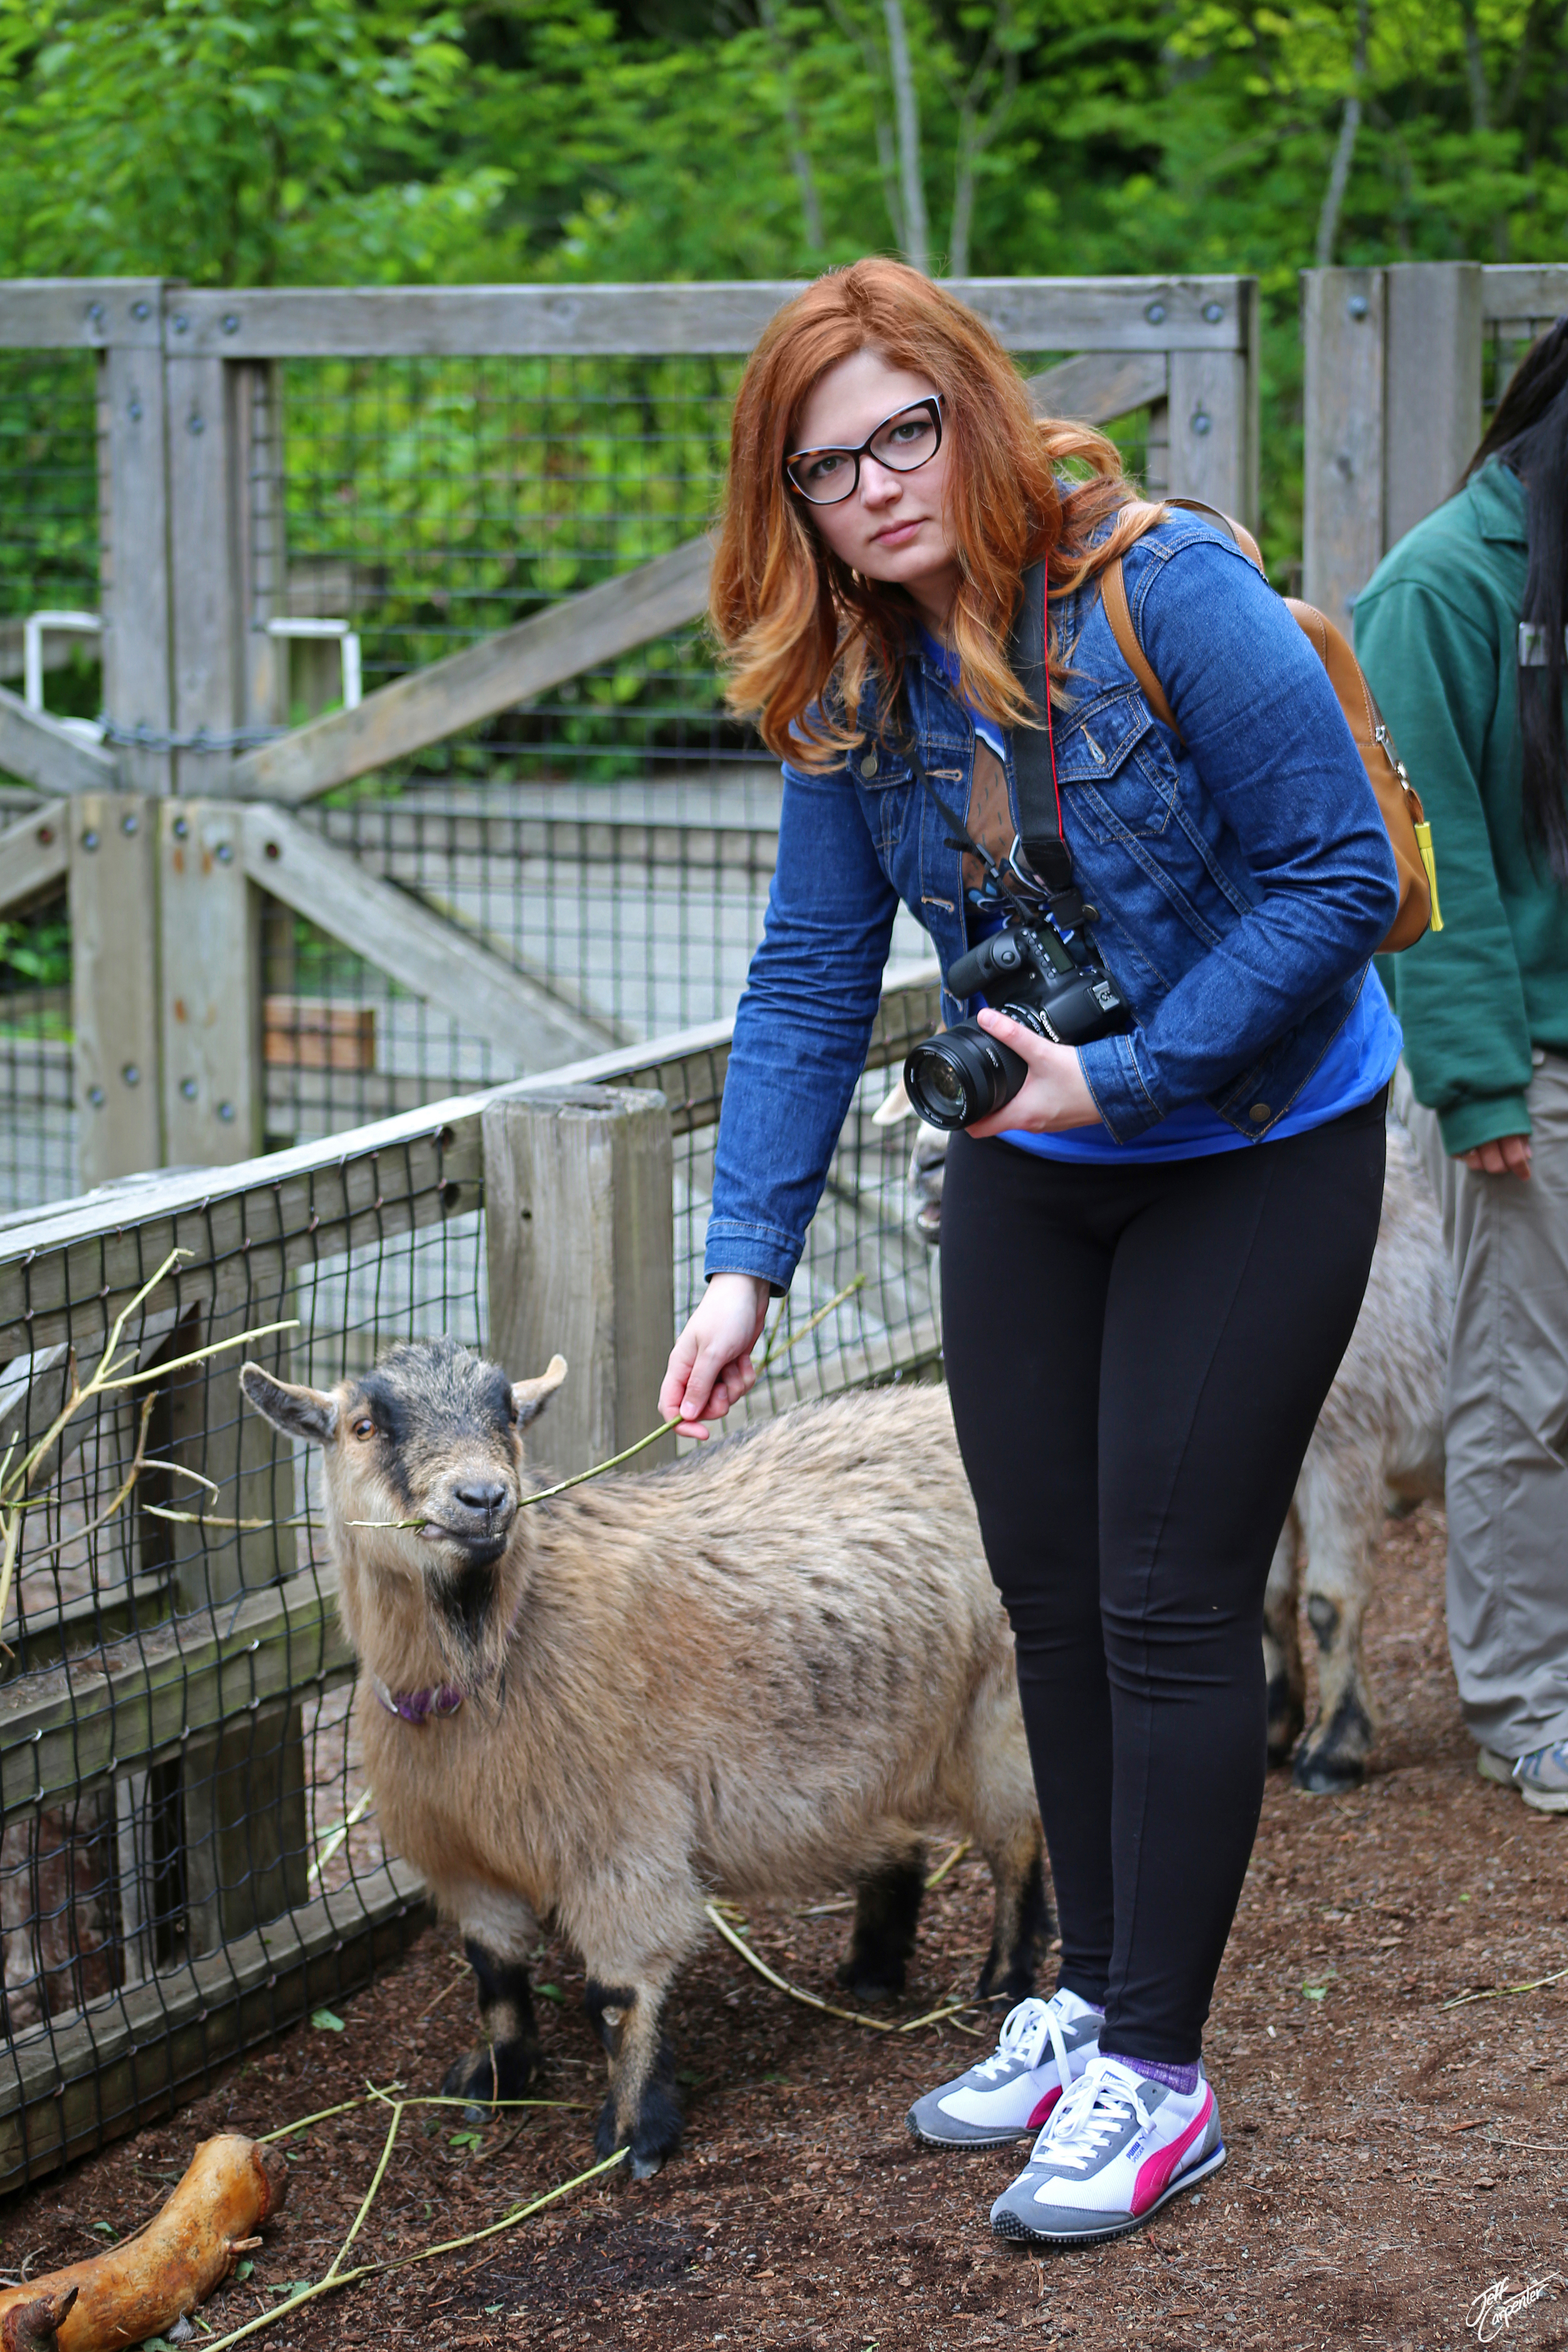 Wren, feeding a goat and matching it's expression.